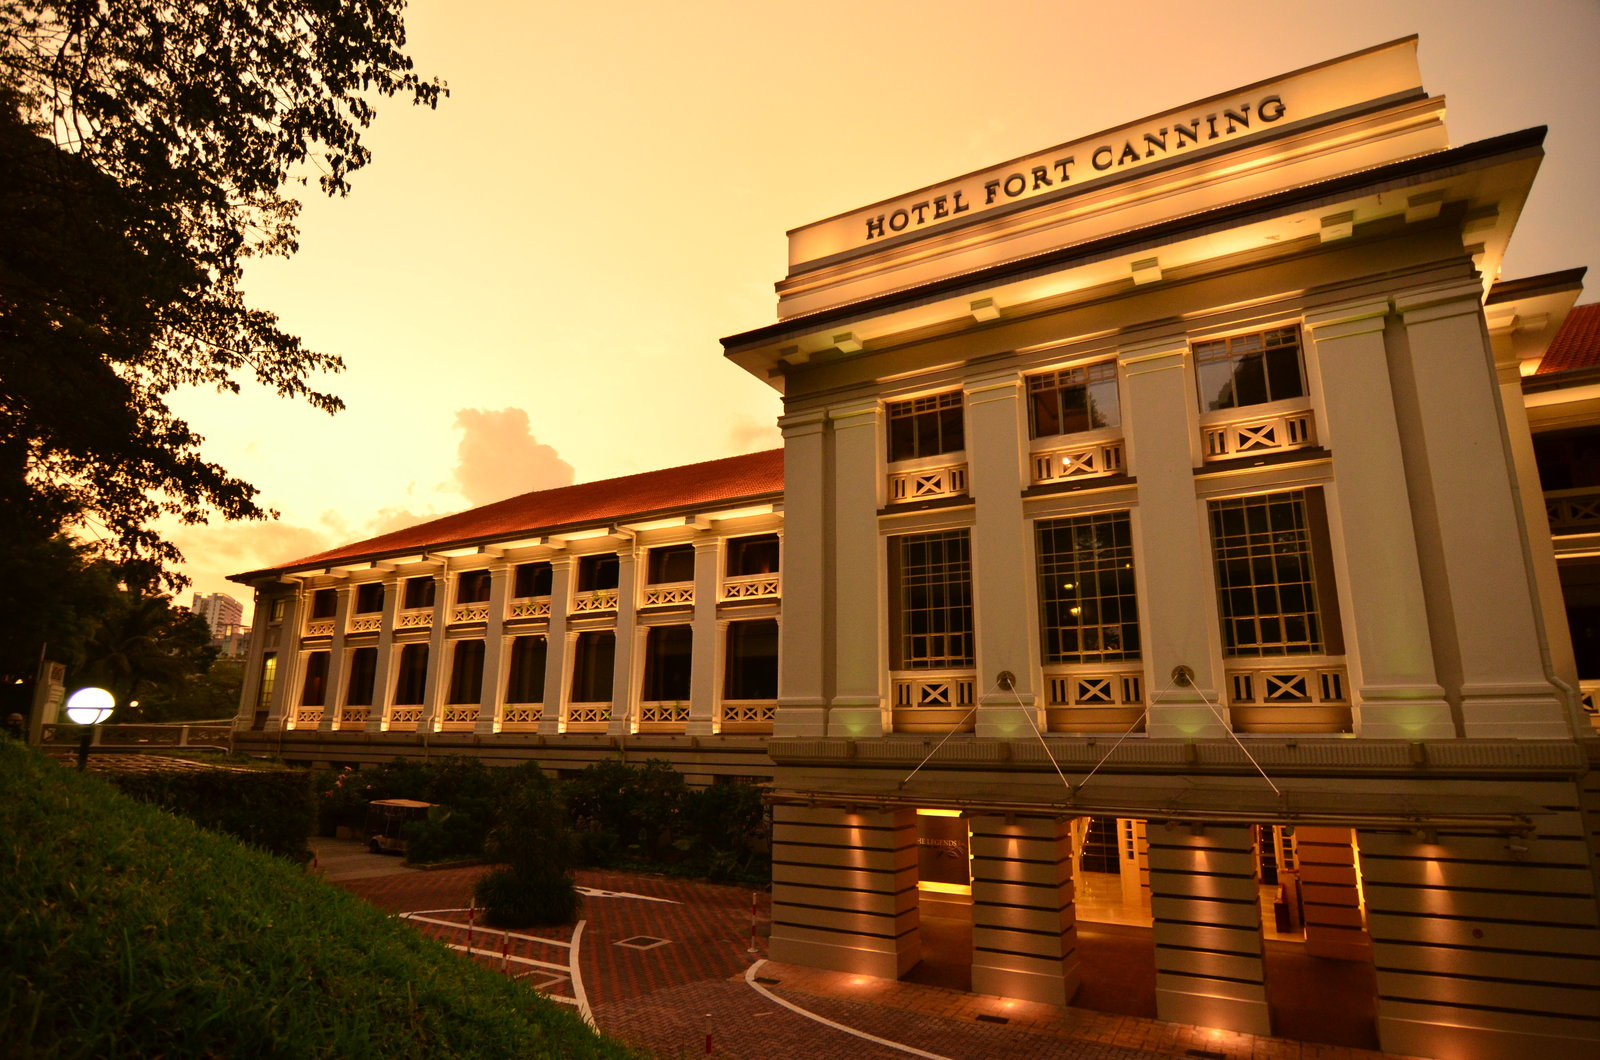 Hotel Fort Canning - Wikipedia